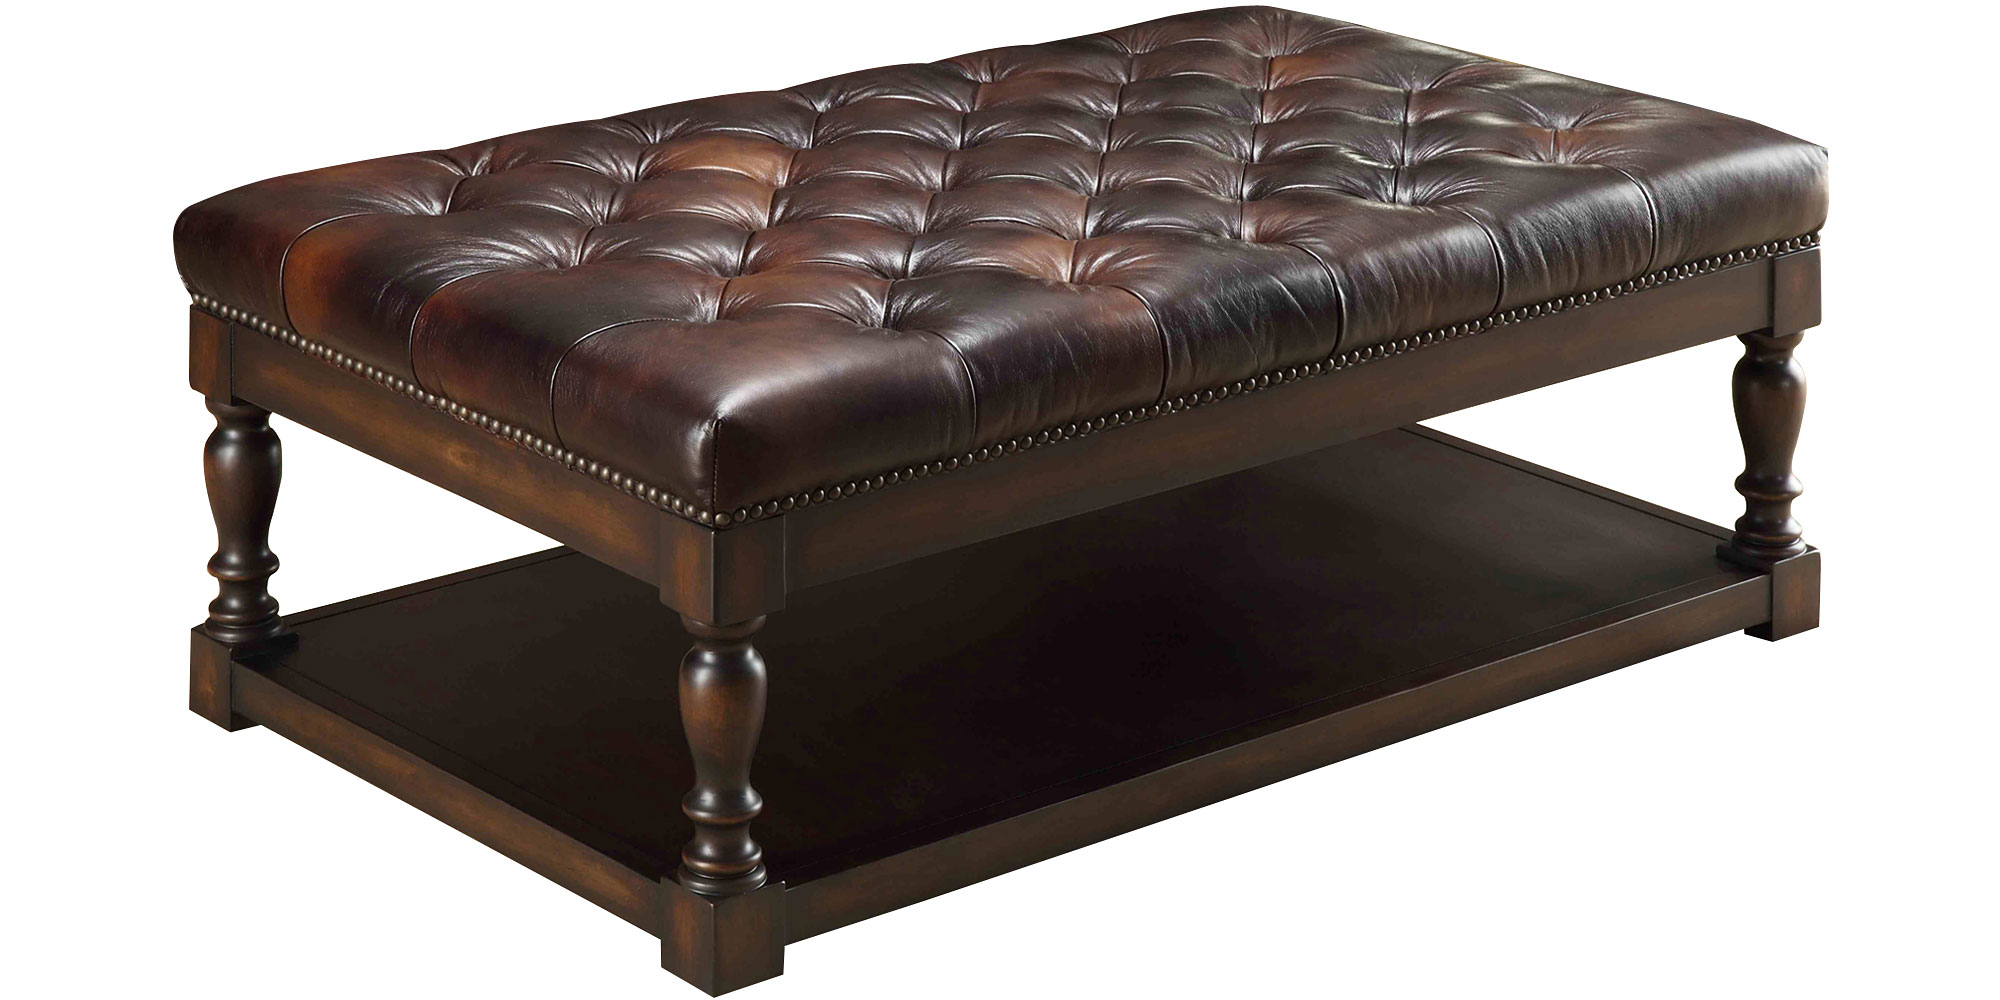 Alfred Ready To Ship Coffee Table Leather Ottoman